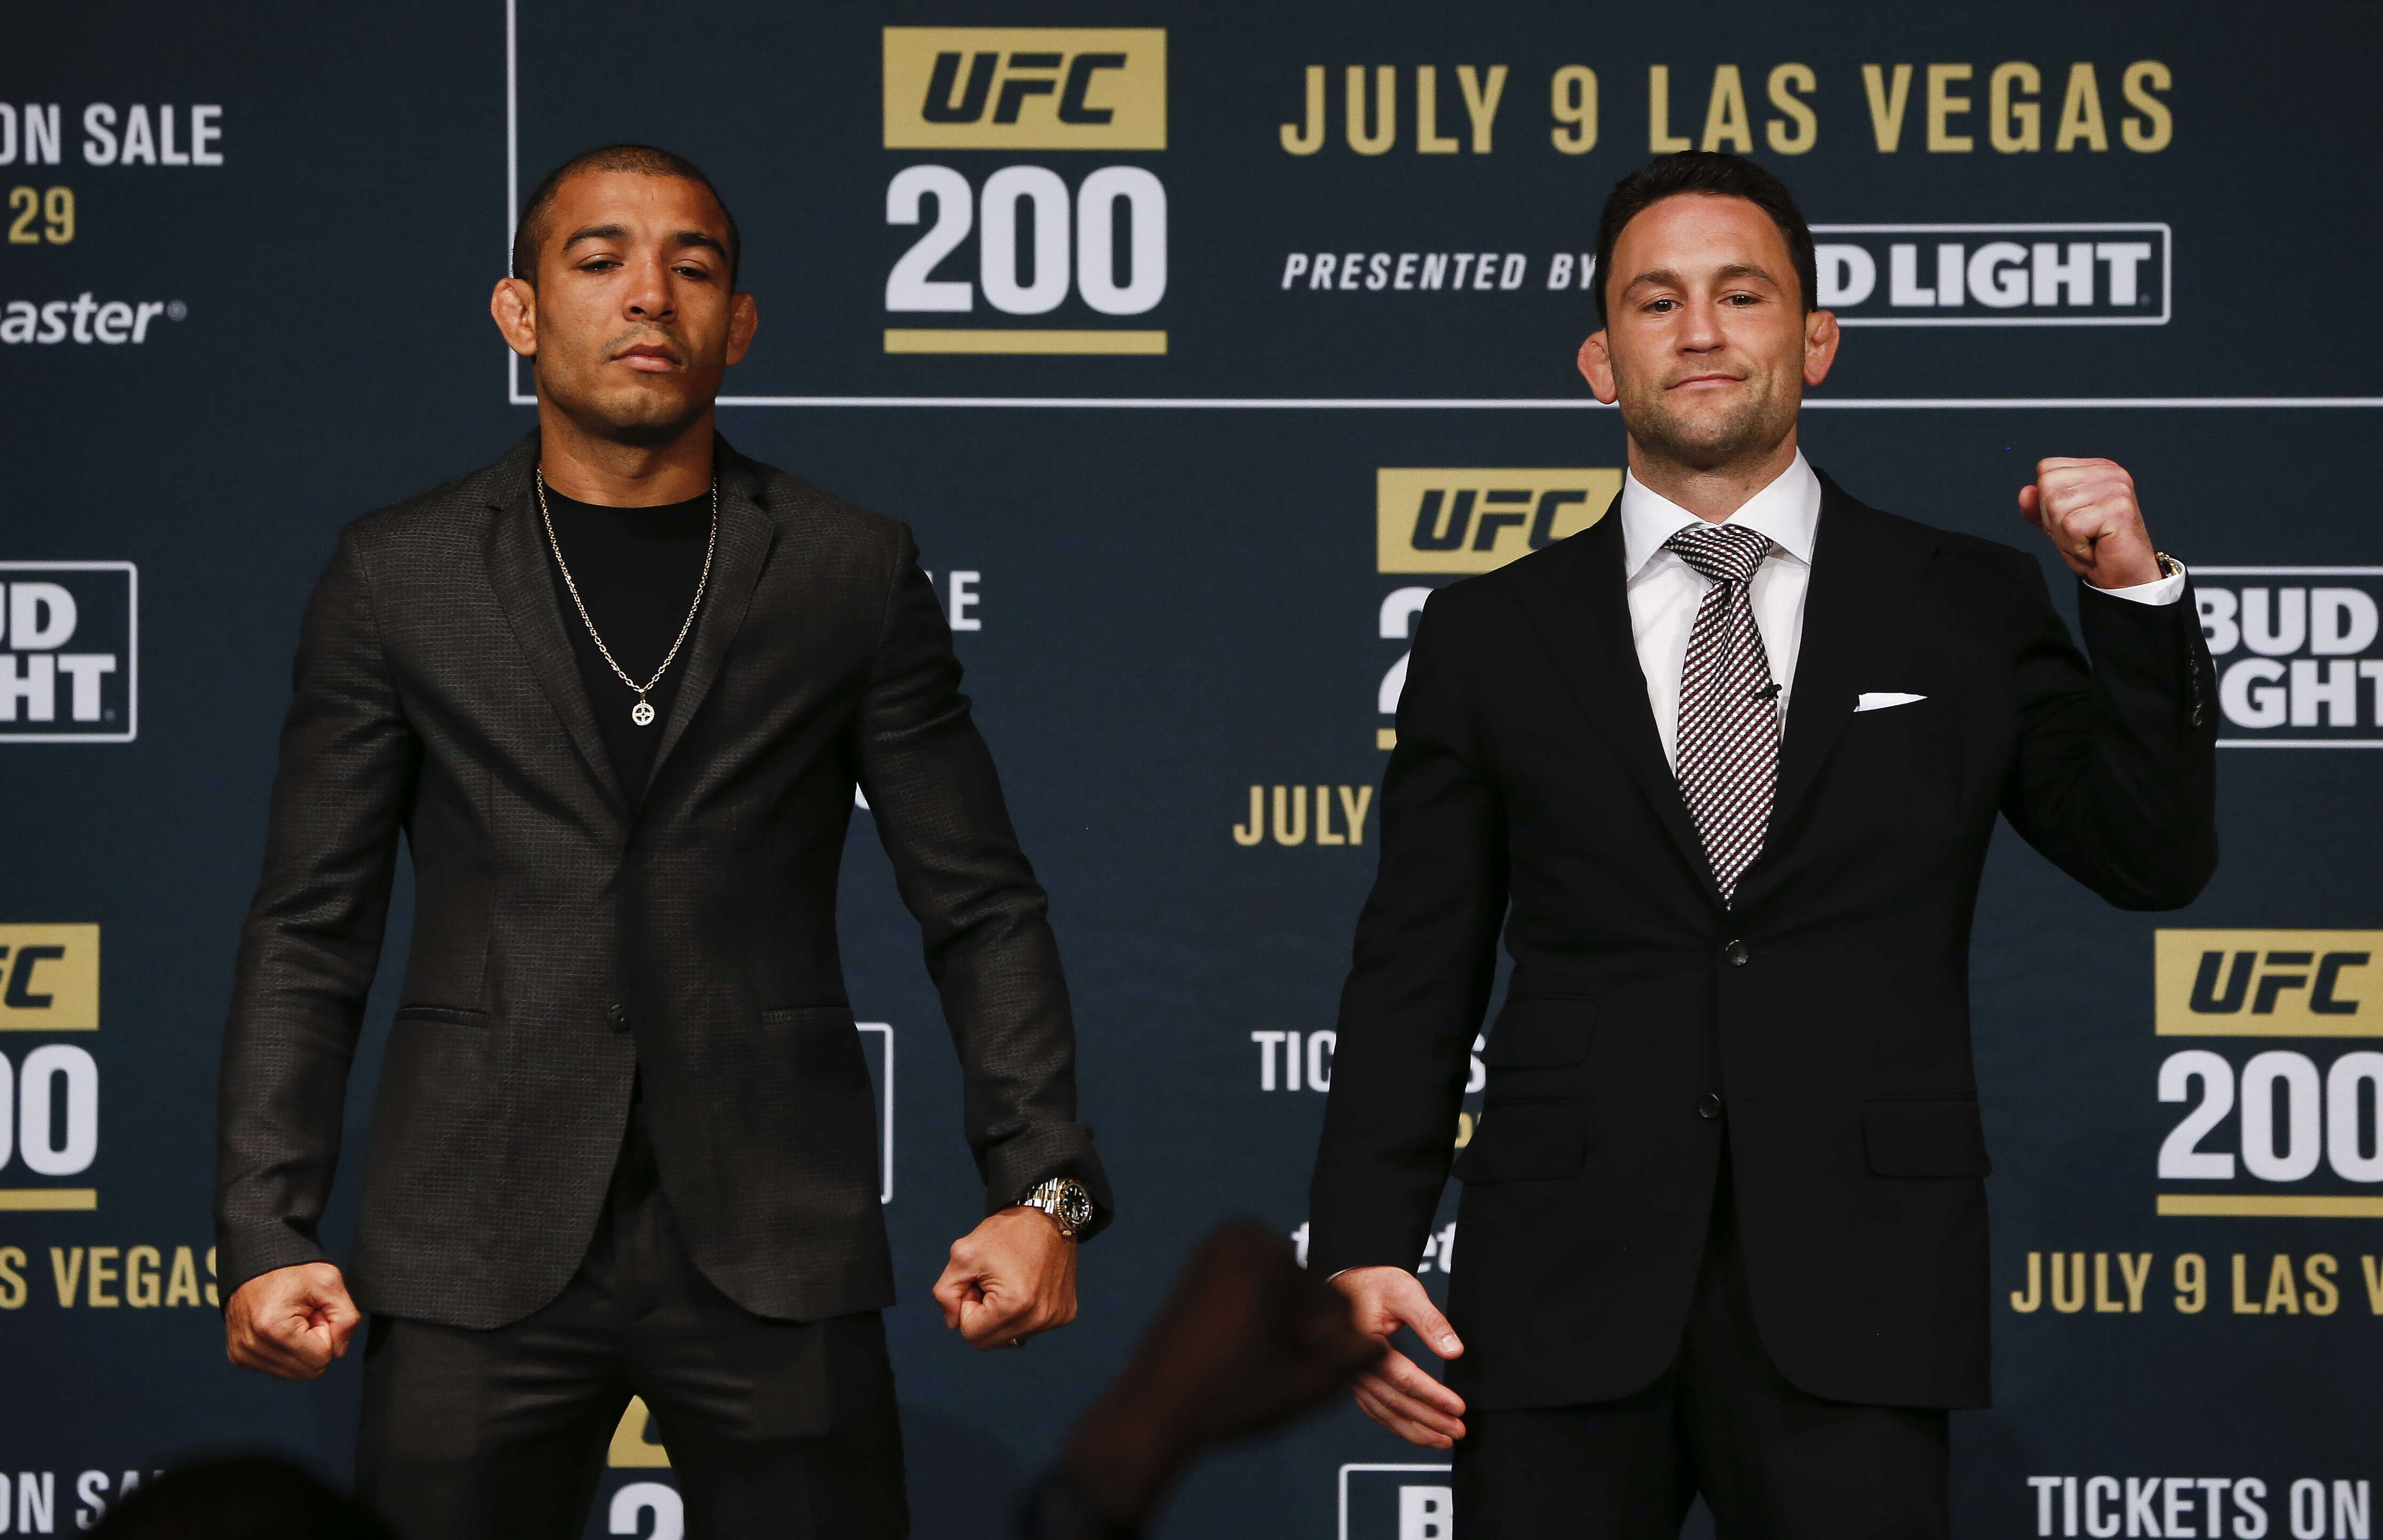 UFC Are Lining Up Opponent For Conor McGregor That Isnt Nate Diaz GettyImages 525010170